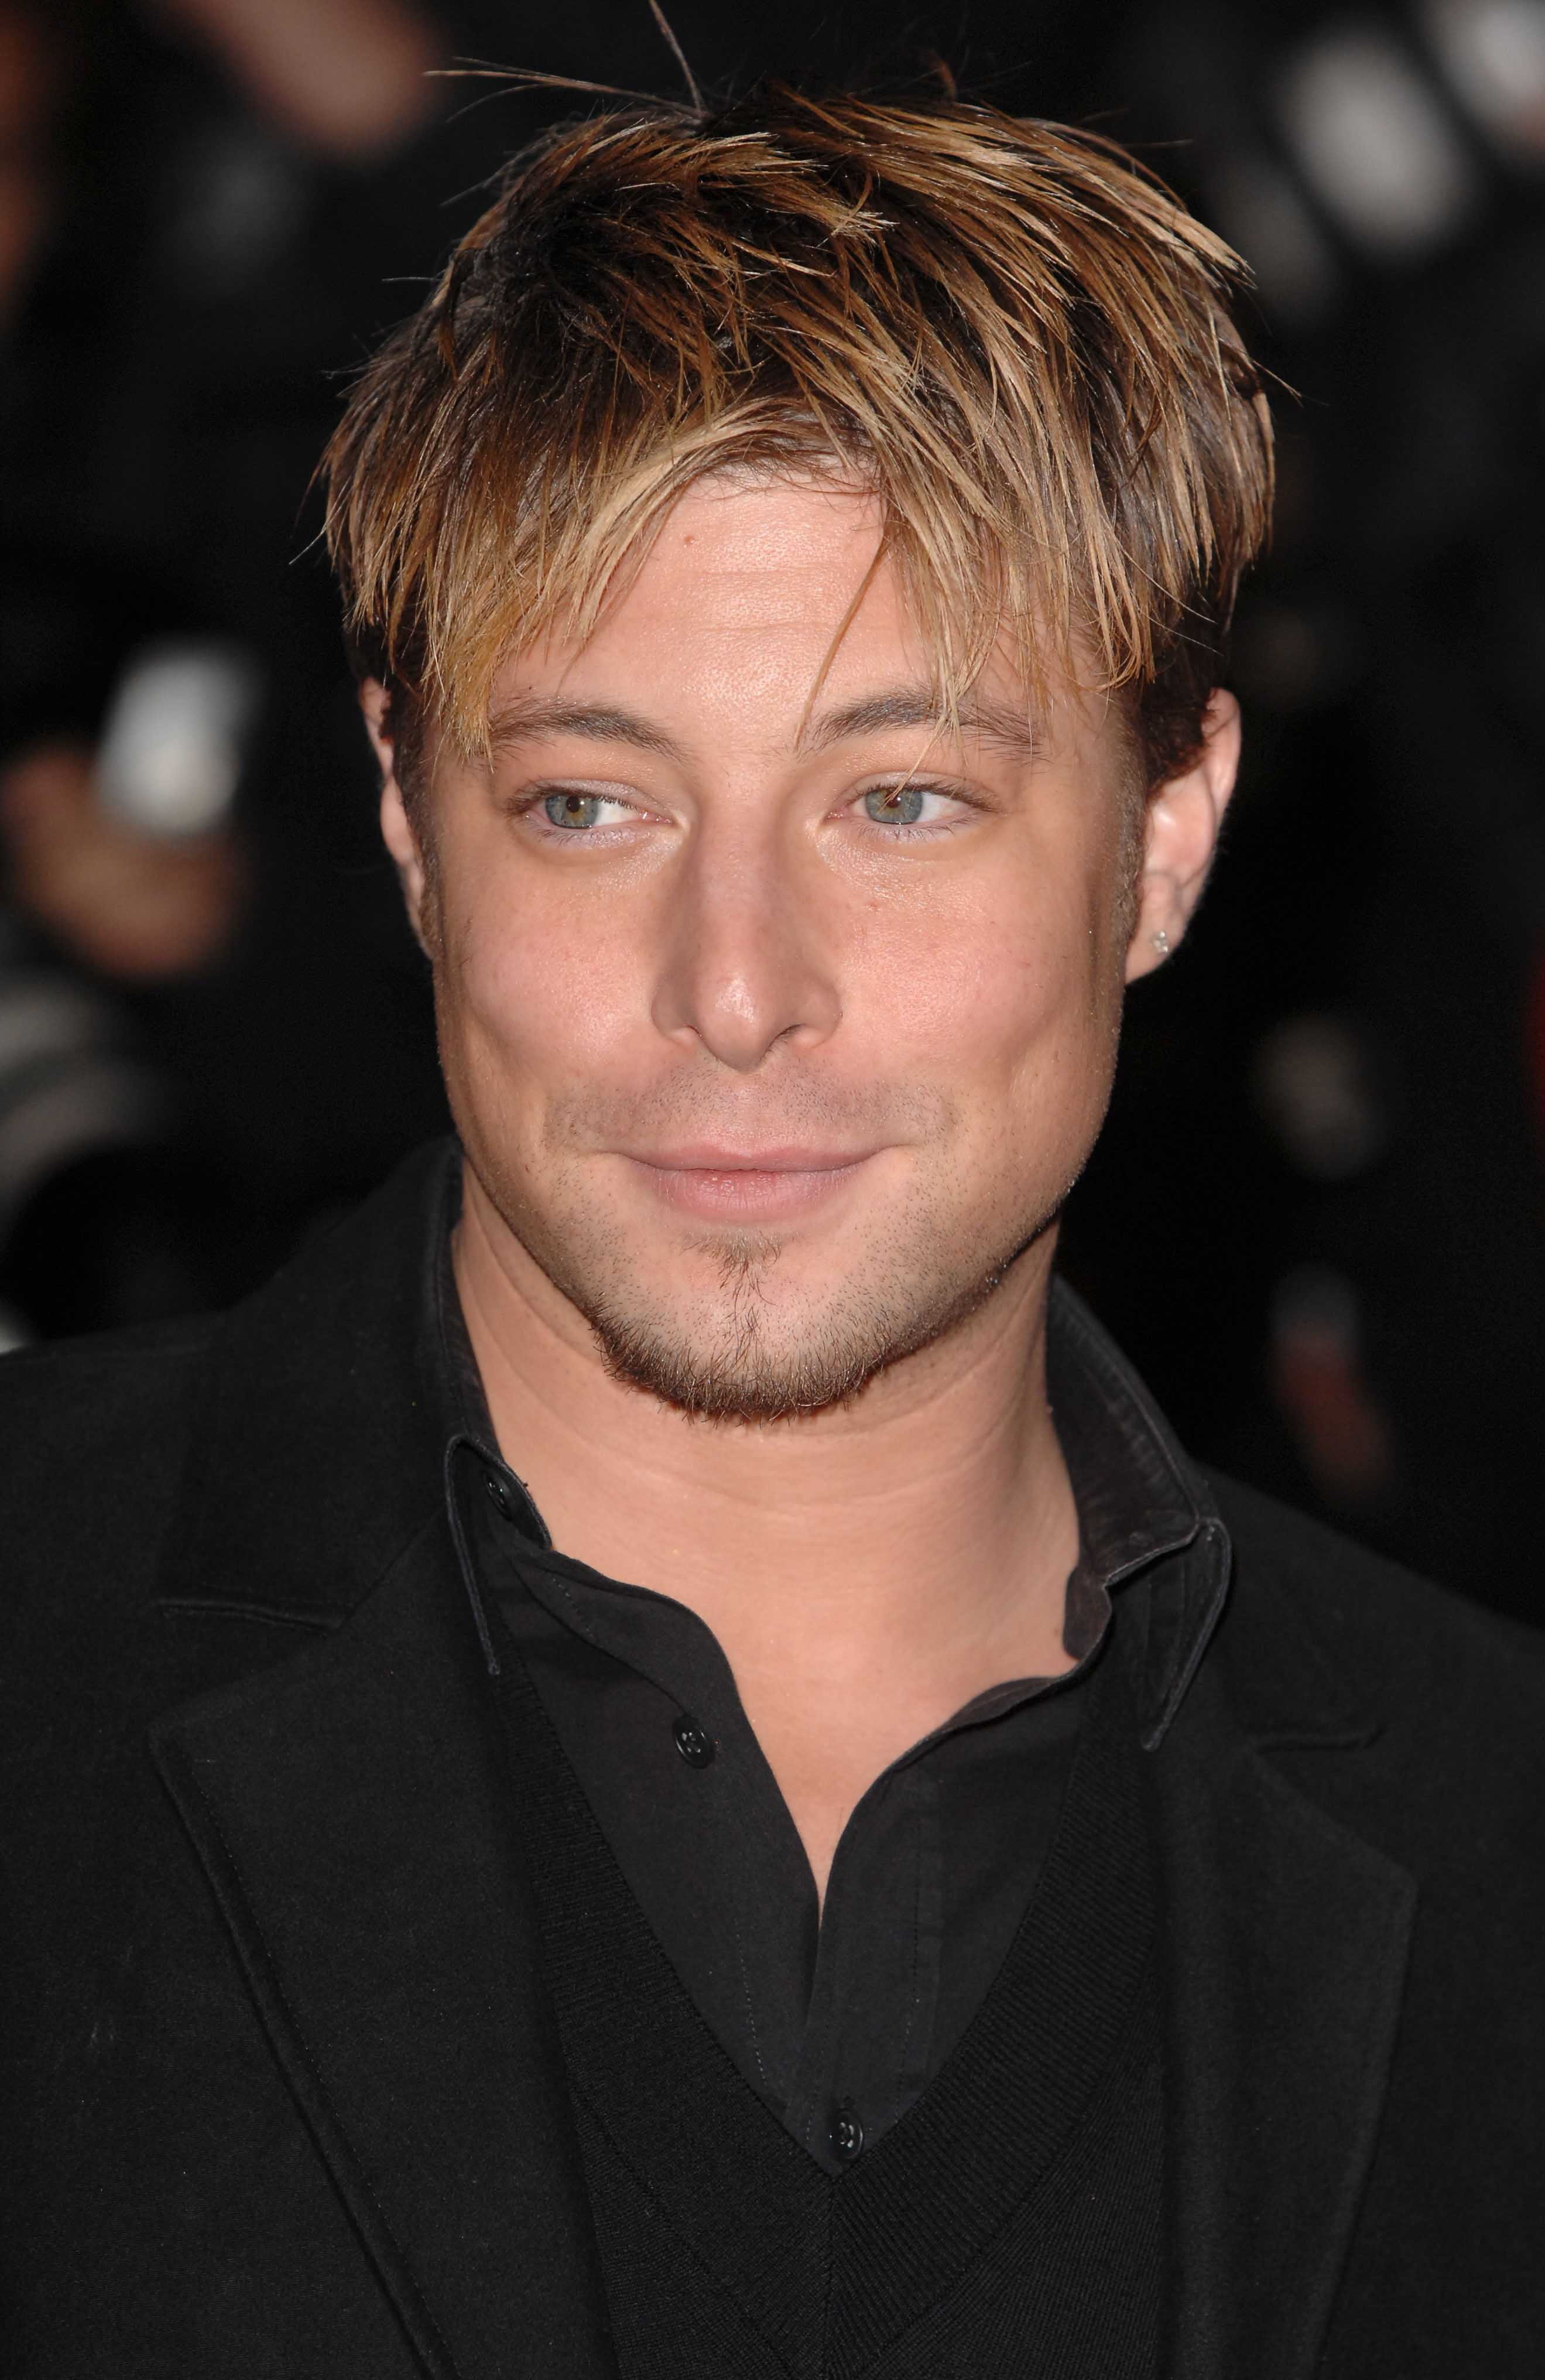 Duncan James photo, pics, wallpaper - photo #